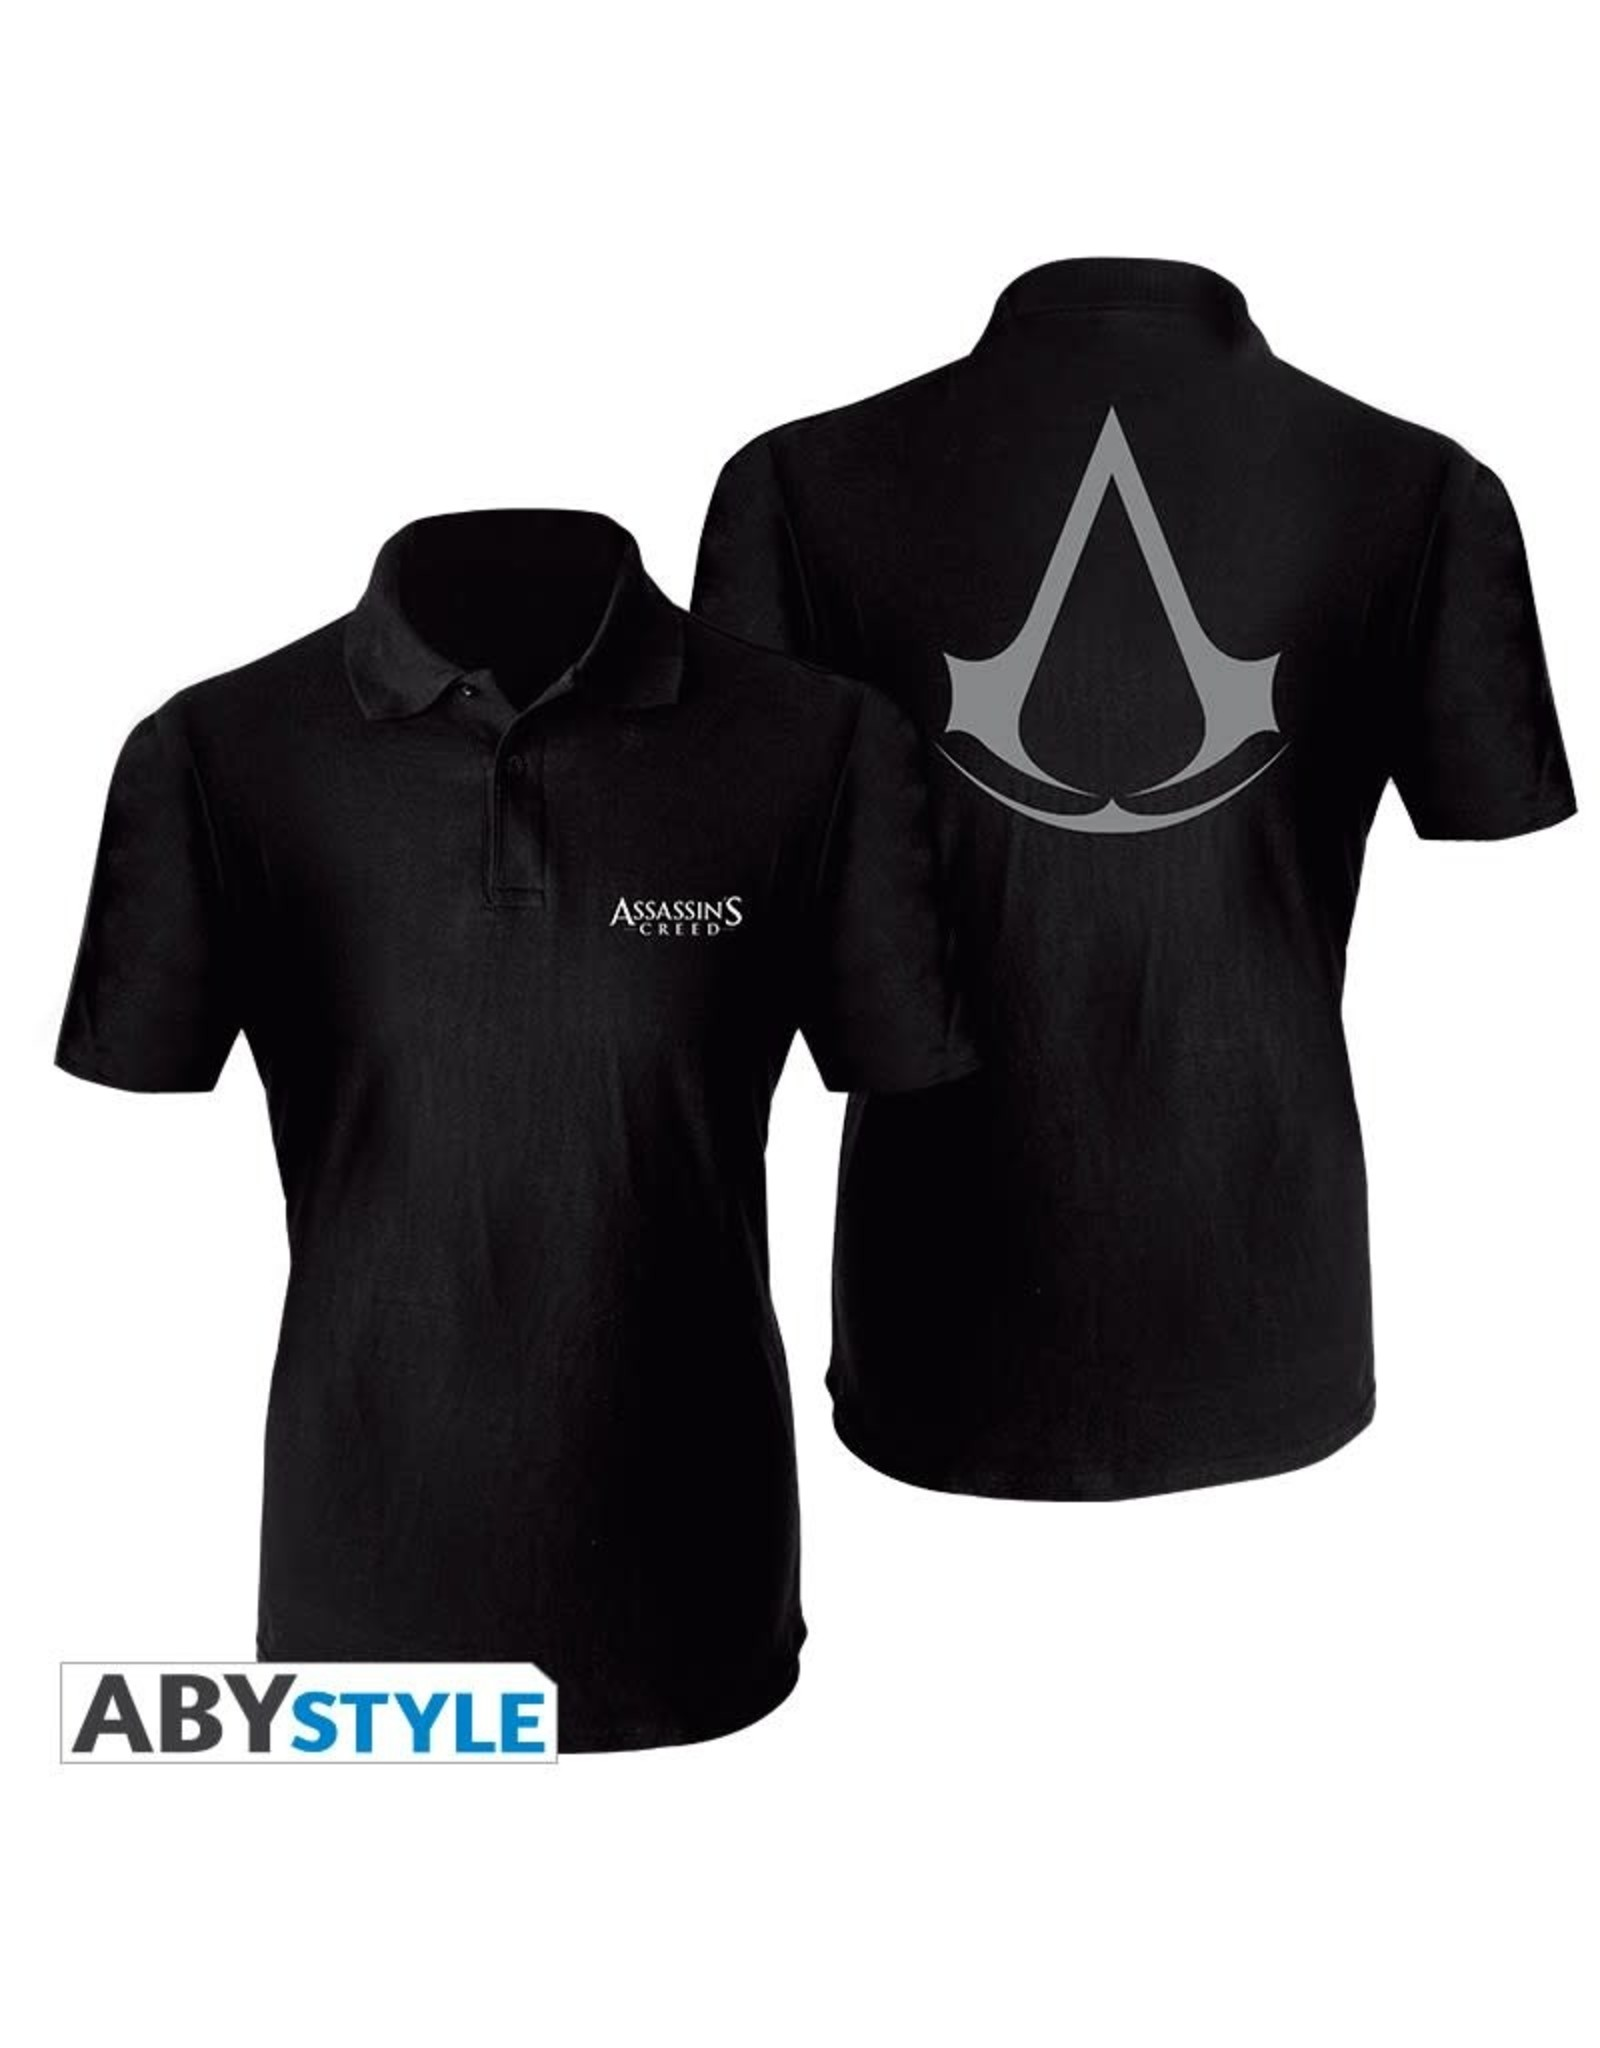 ASSASSIN'S CREED - Polo - Crest (L)